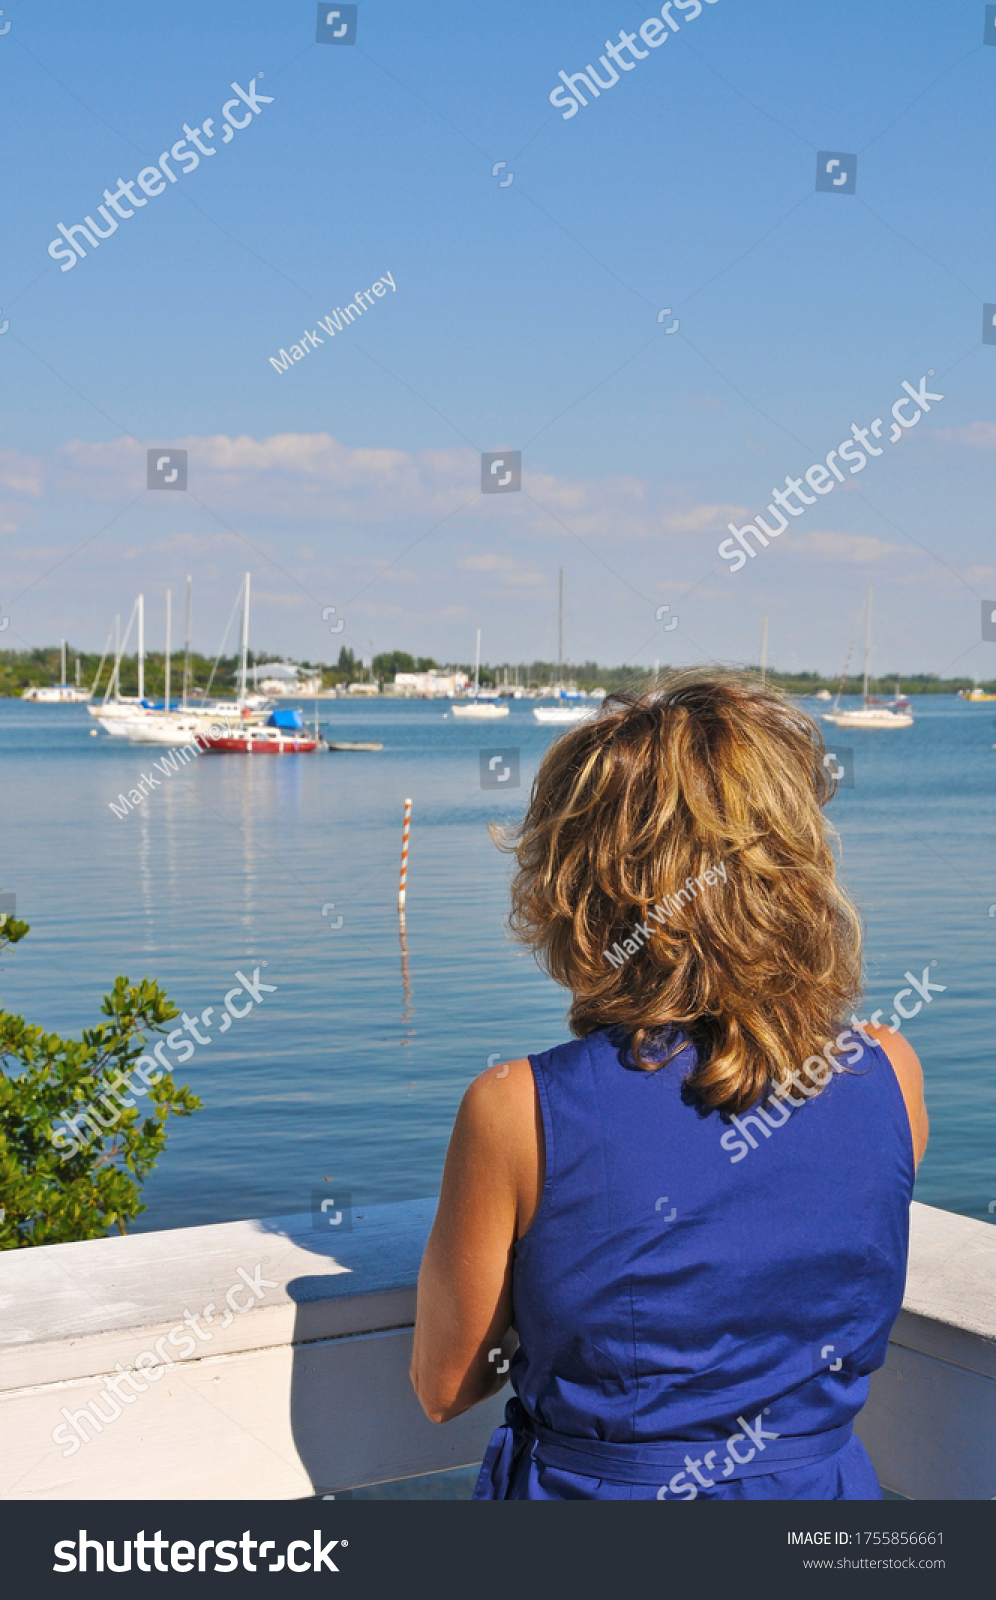 A Beautiful Woman Wearing a Blue Sun Dress Looking out at Sailboats in the Marina